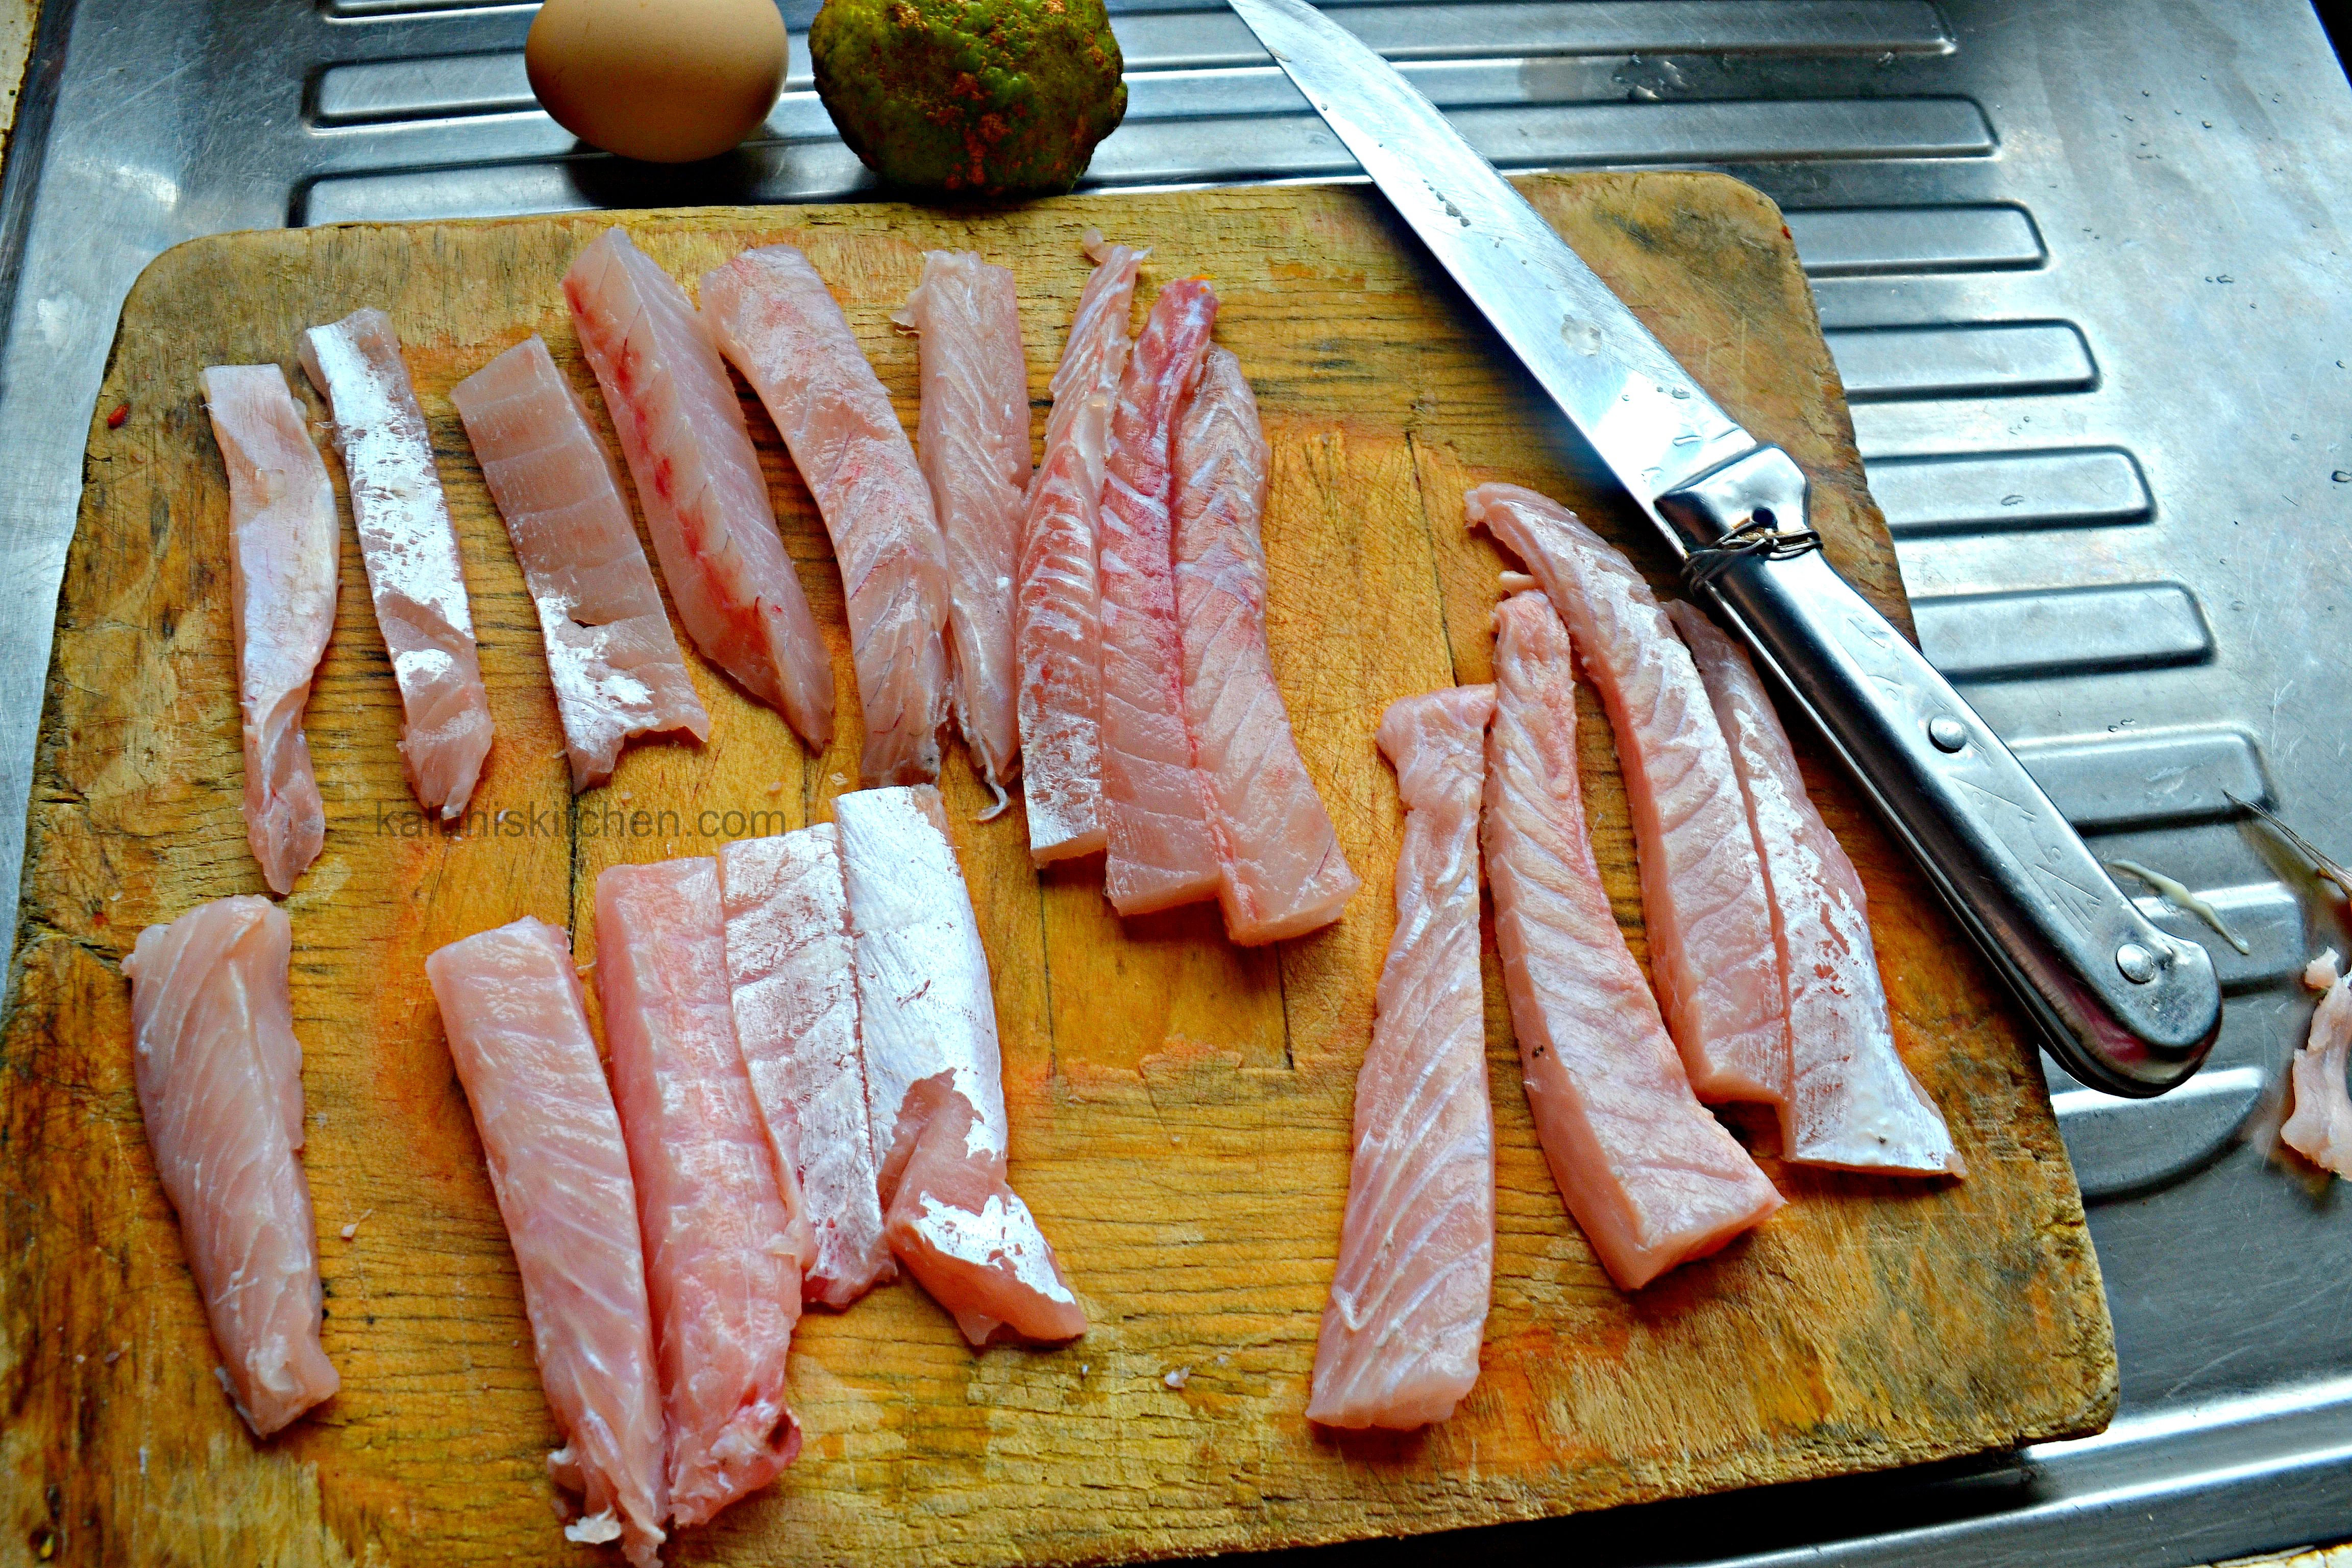 while cutting your fish fingers, make them slightly thicker si that they do not become too crispy_fresh fish from nairobi city mrket_kaluhiskitchen.com